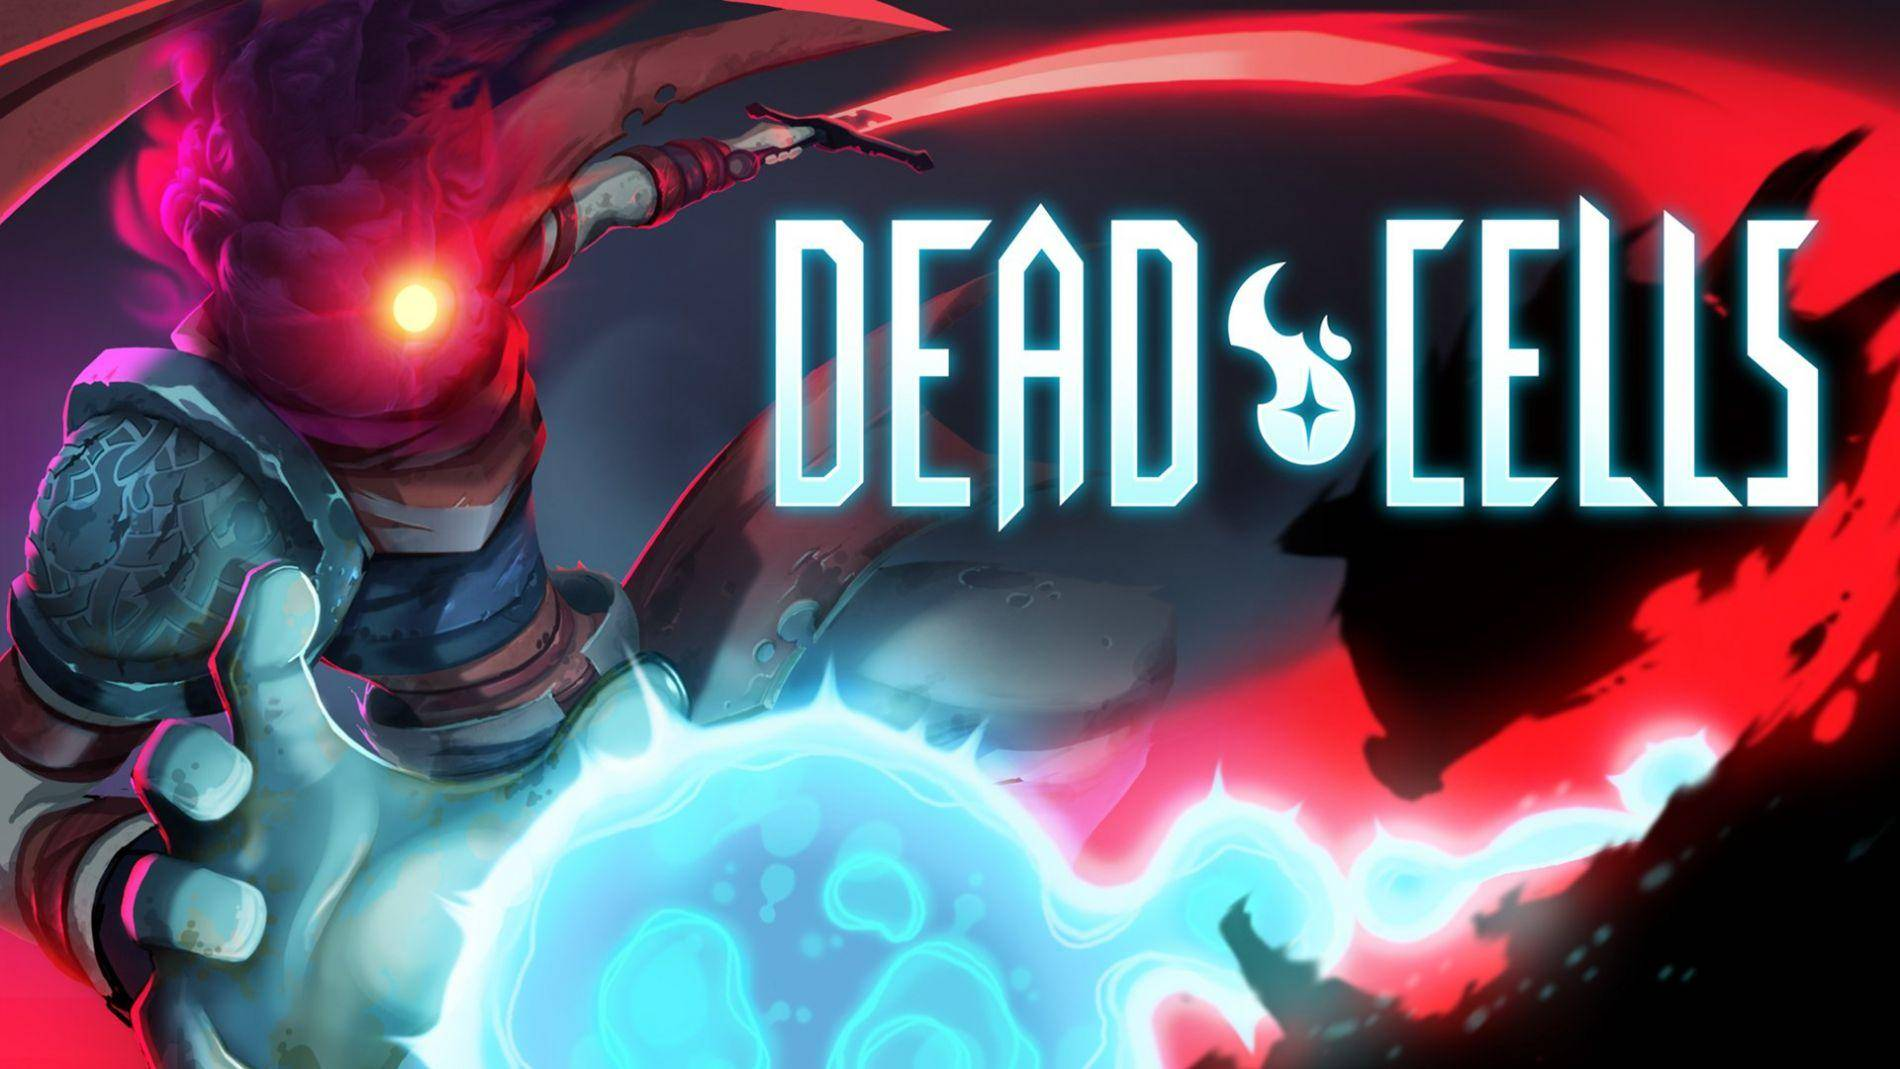 Llega Rise of the Giant a Dead Cells